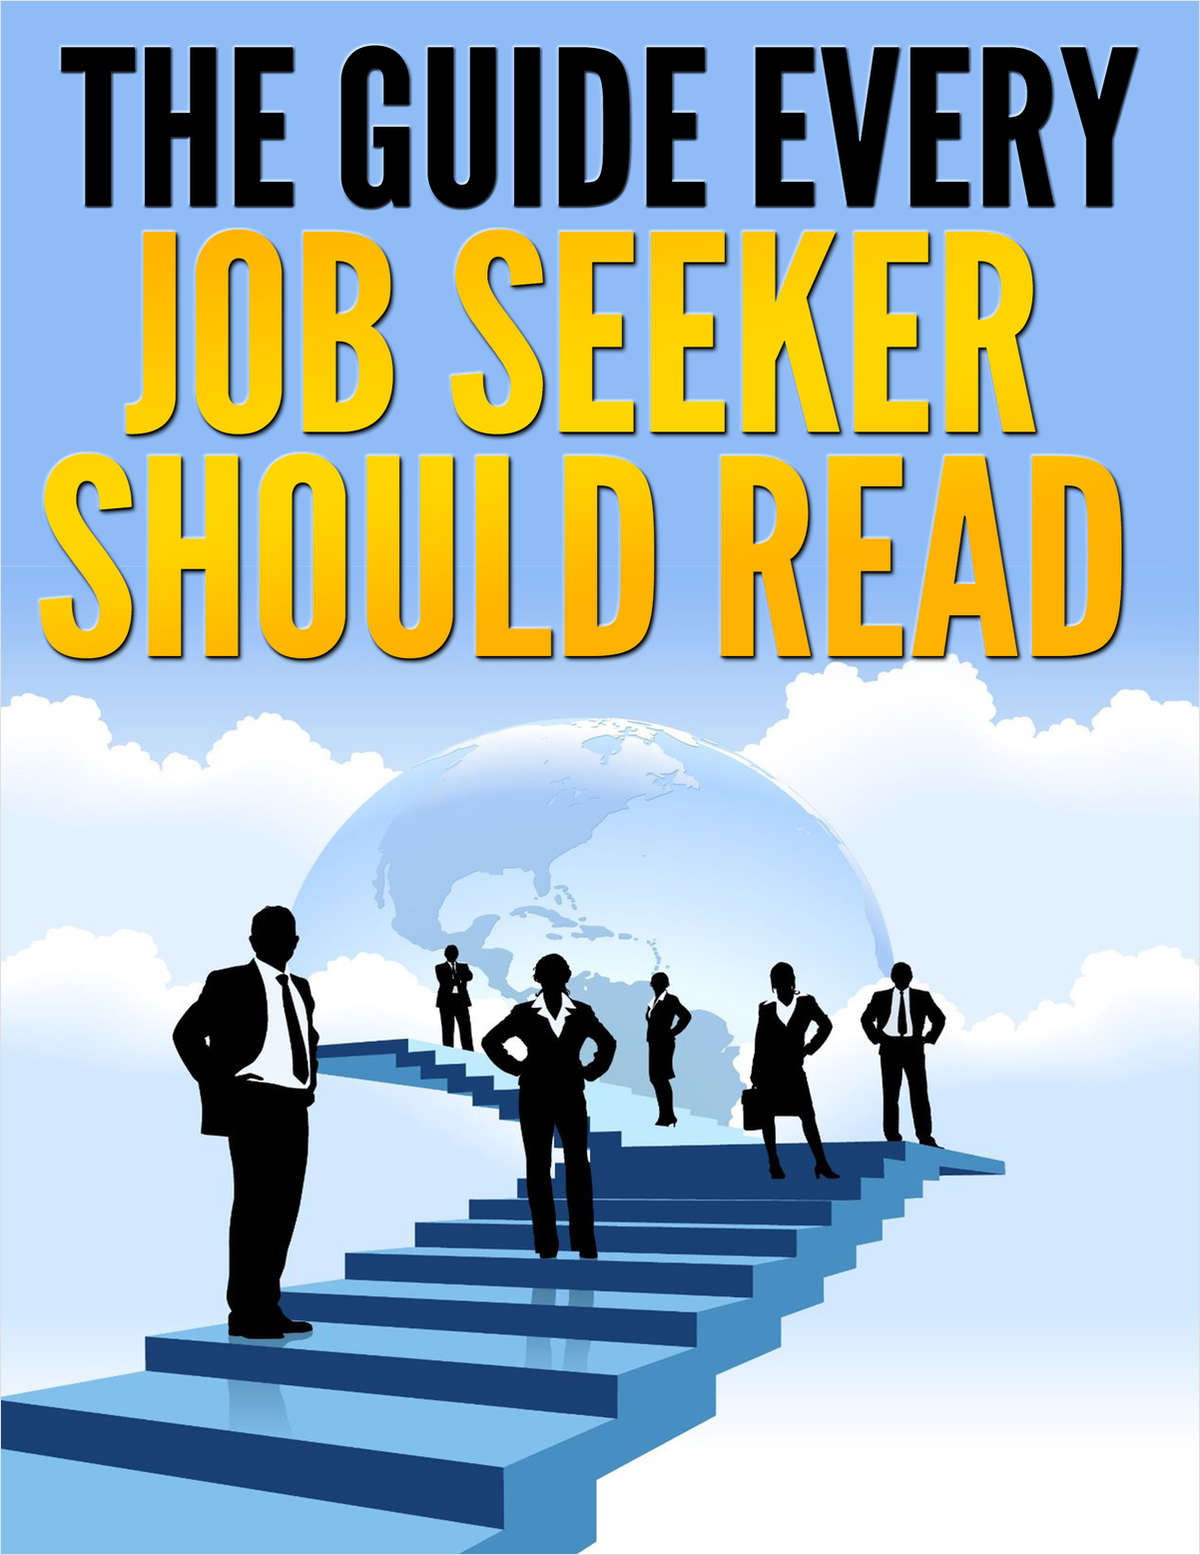 The Guide Every Job Seeker Should Read